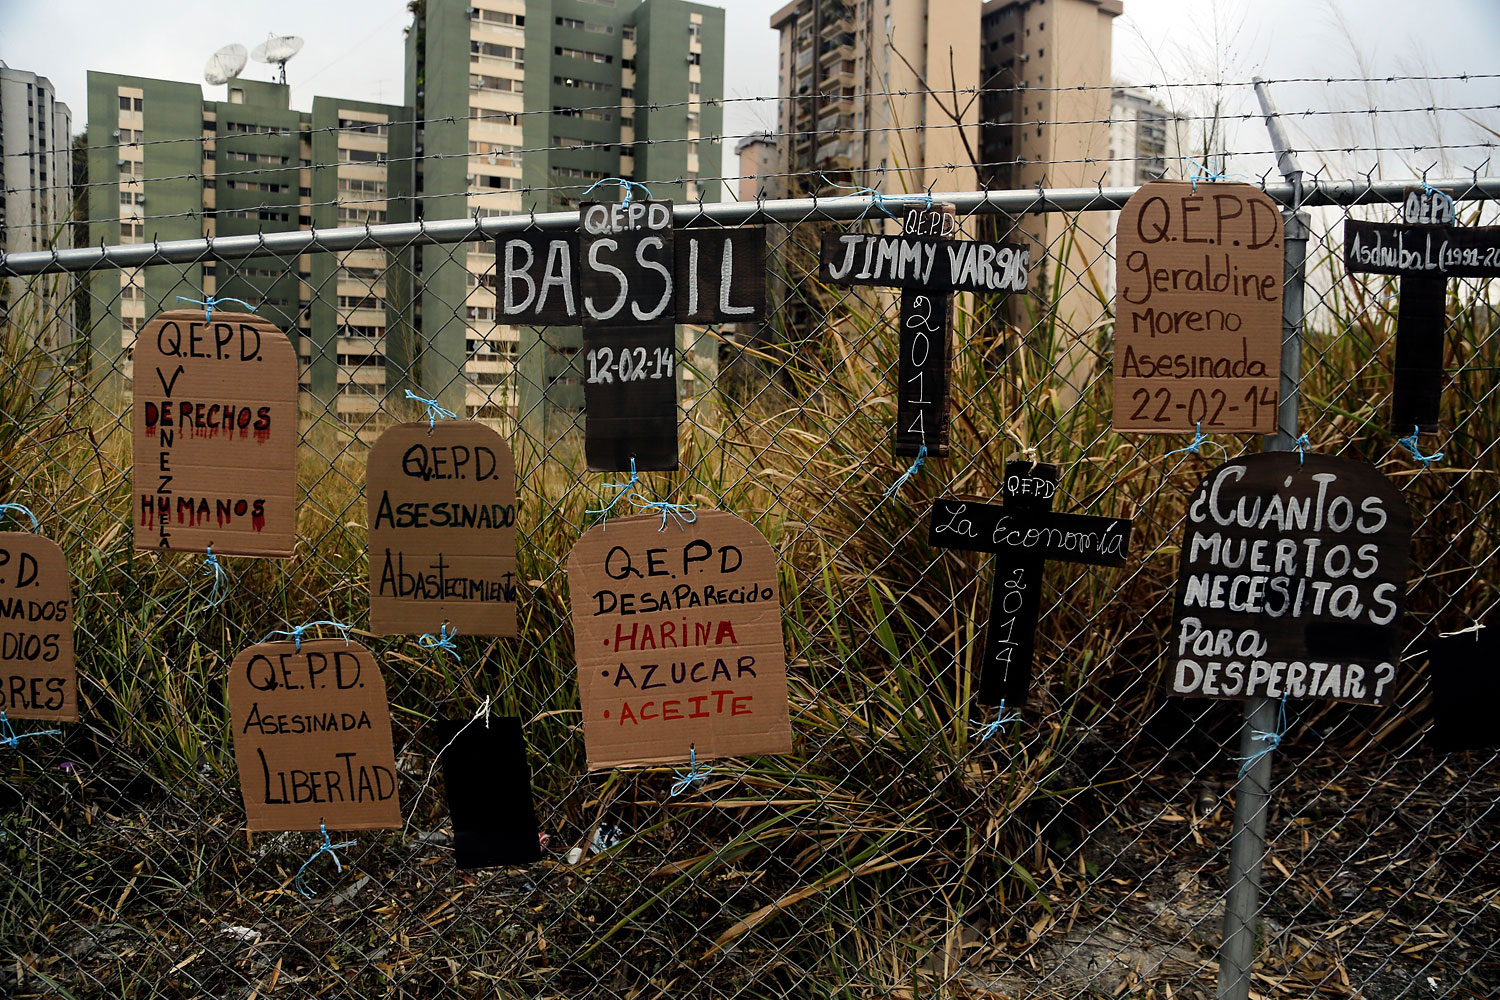 Cardboard cutouts in shapes of headstones and crosses and tied to a fence, bear anti-government protest slogans and names of those who have died in recent protests, in Caracas, March 5, 2014.